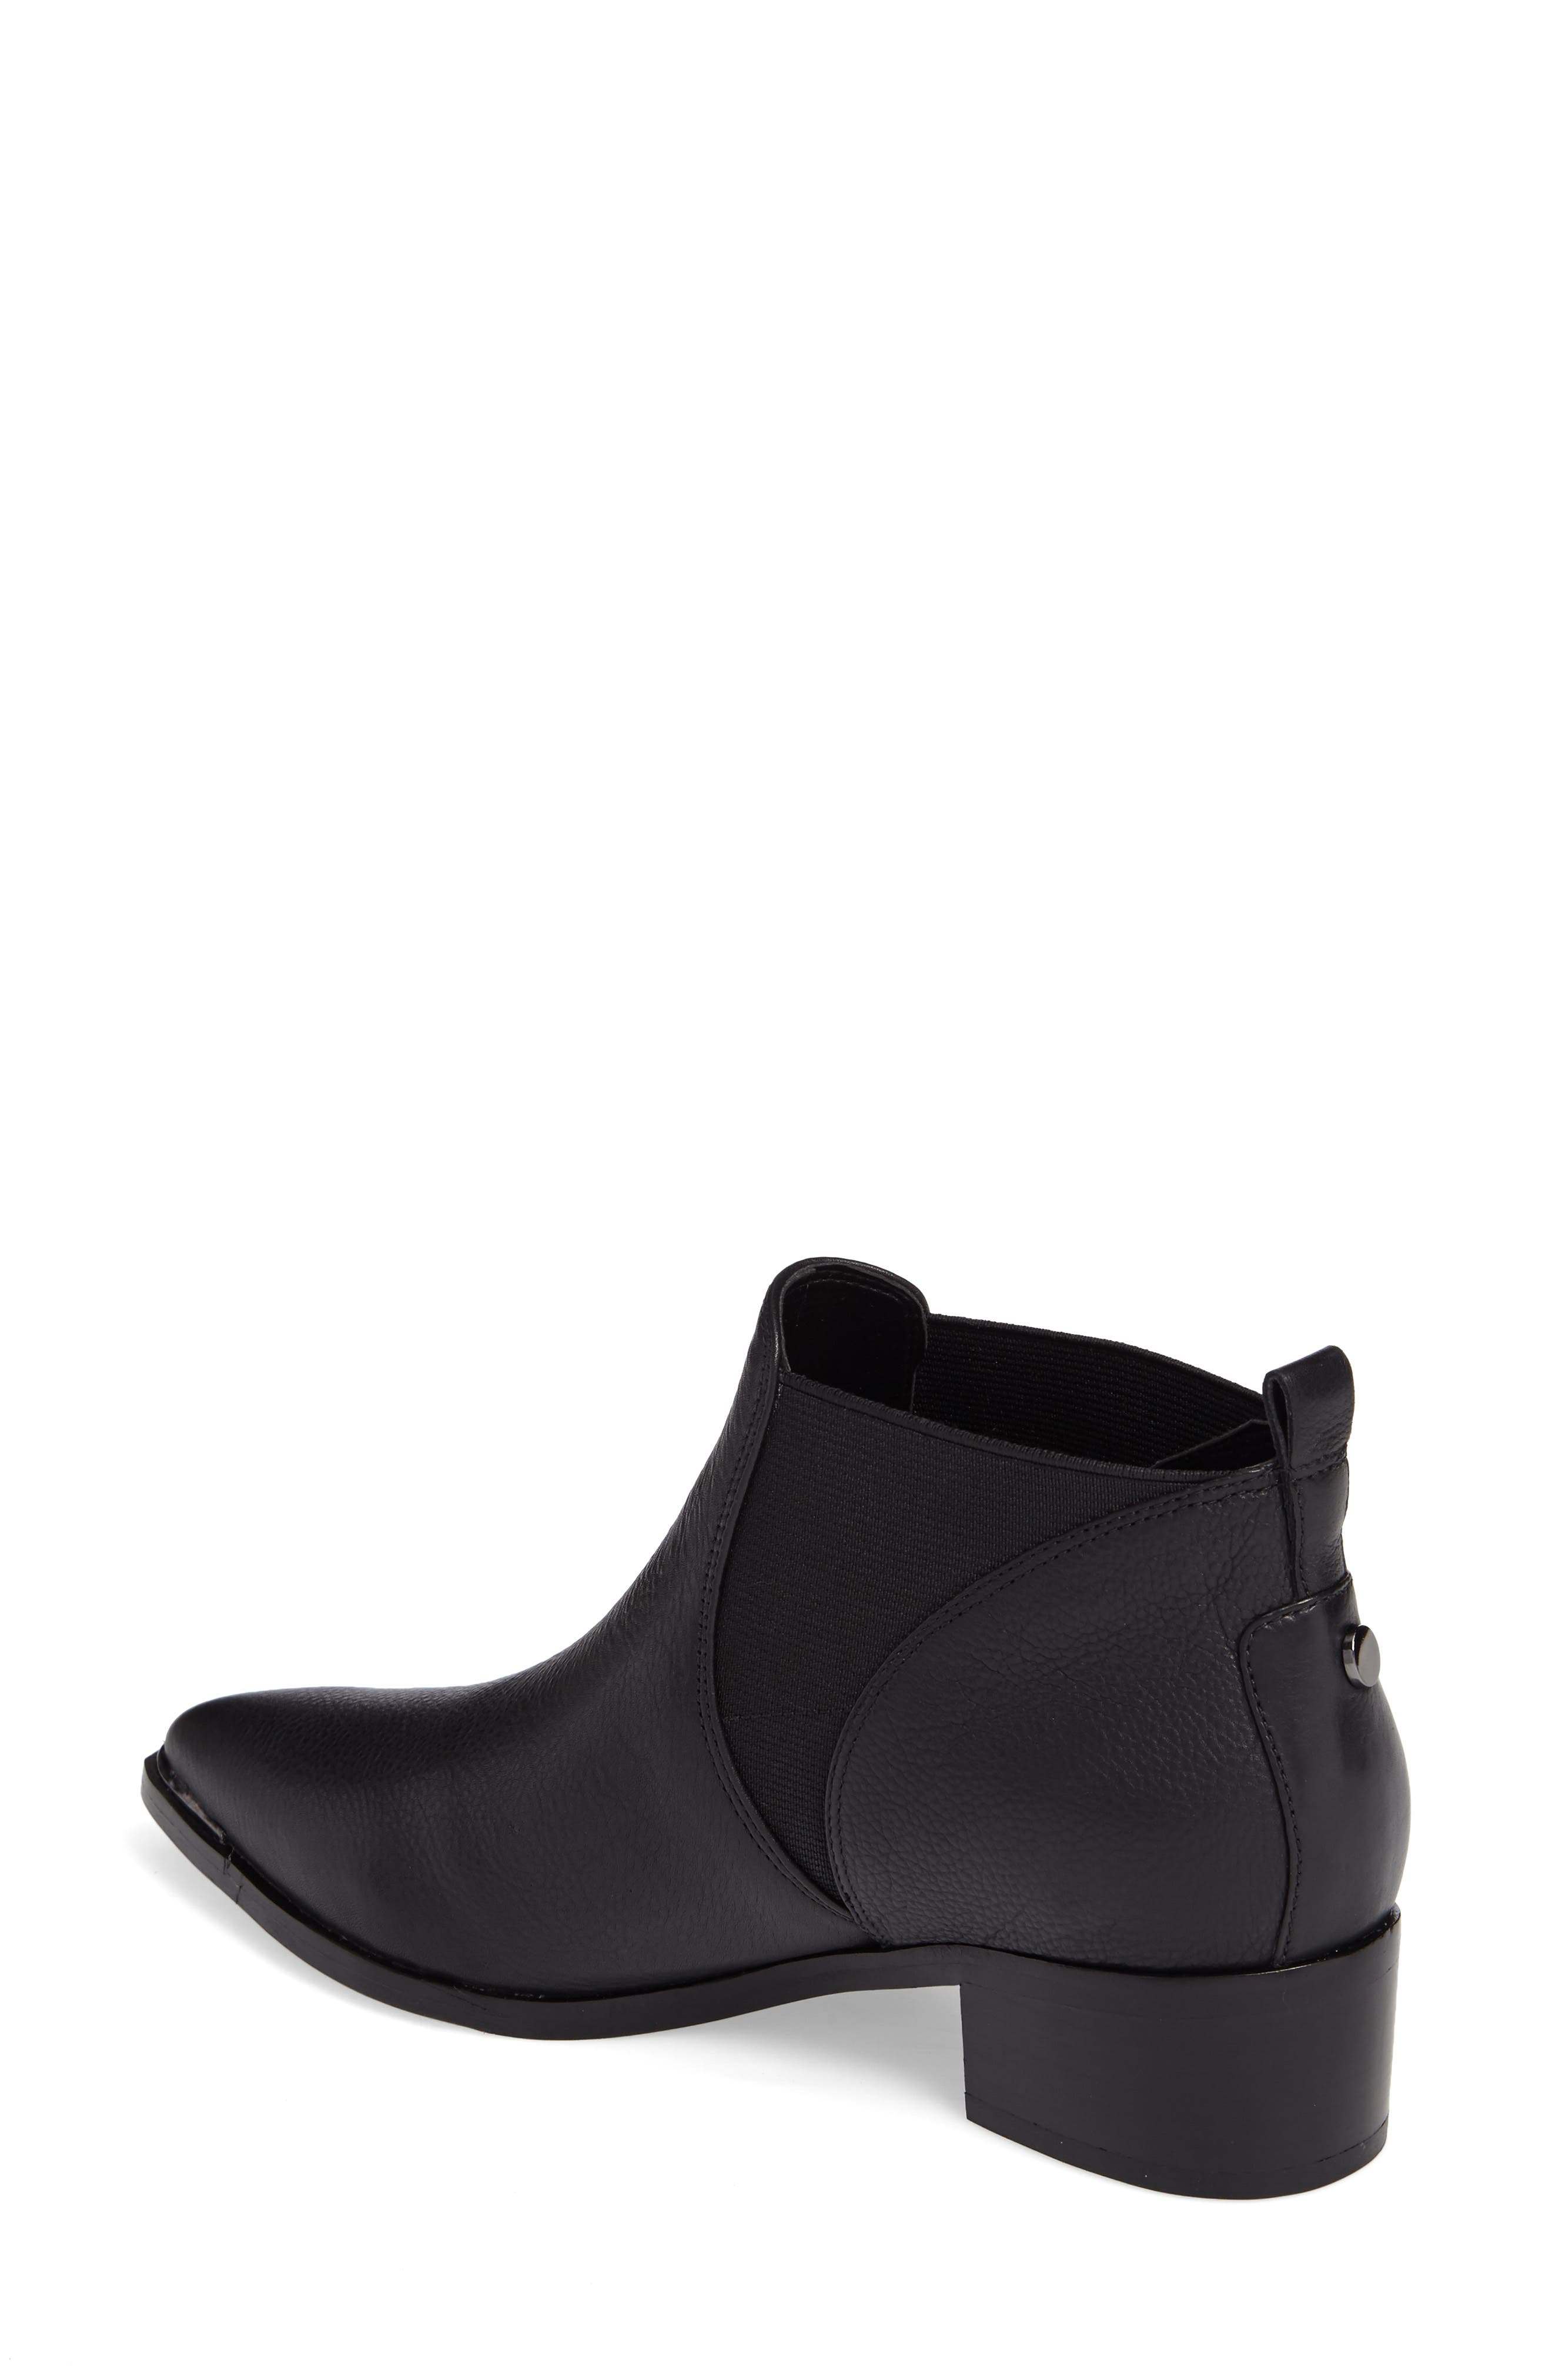 Yellin Pointy Toe Chelsea Boot,                             Alternate thumbnail 2, color,                             001